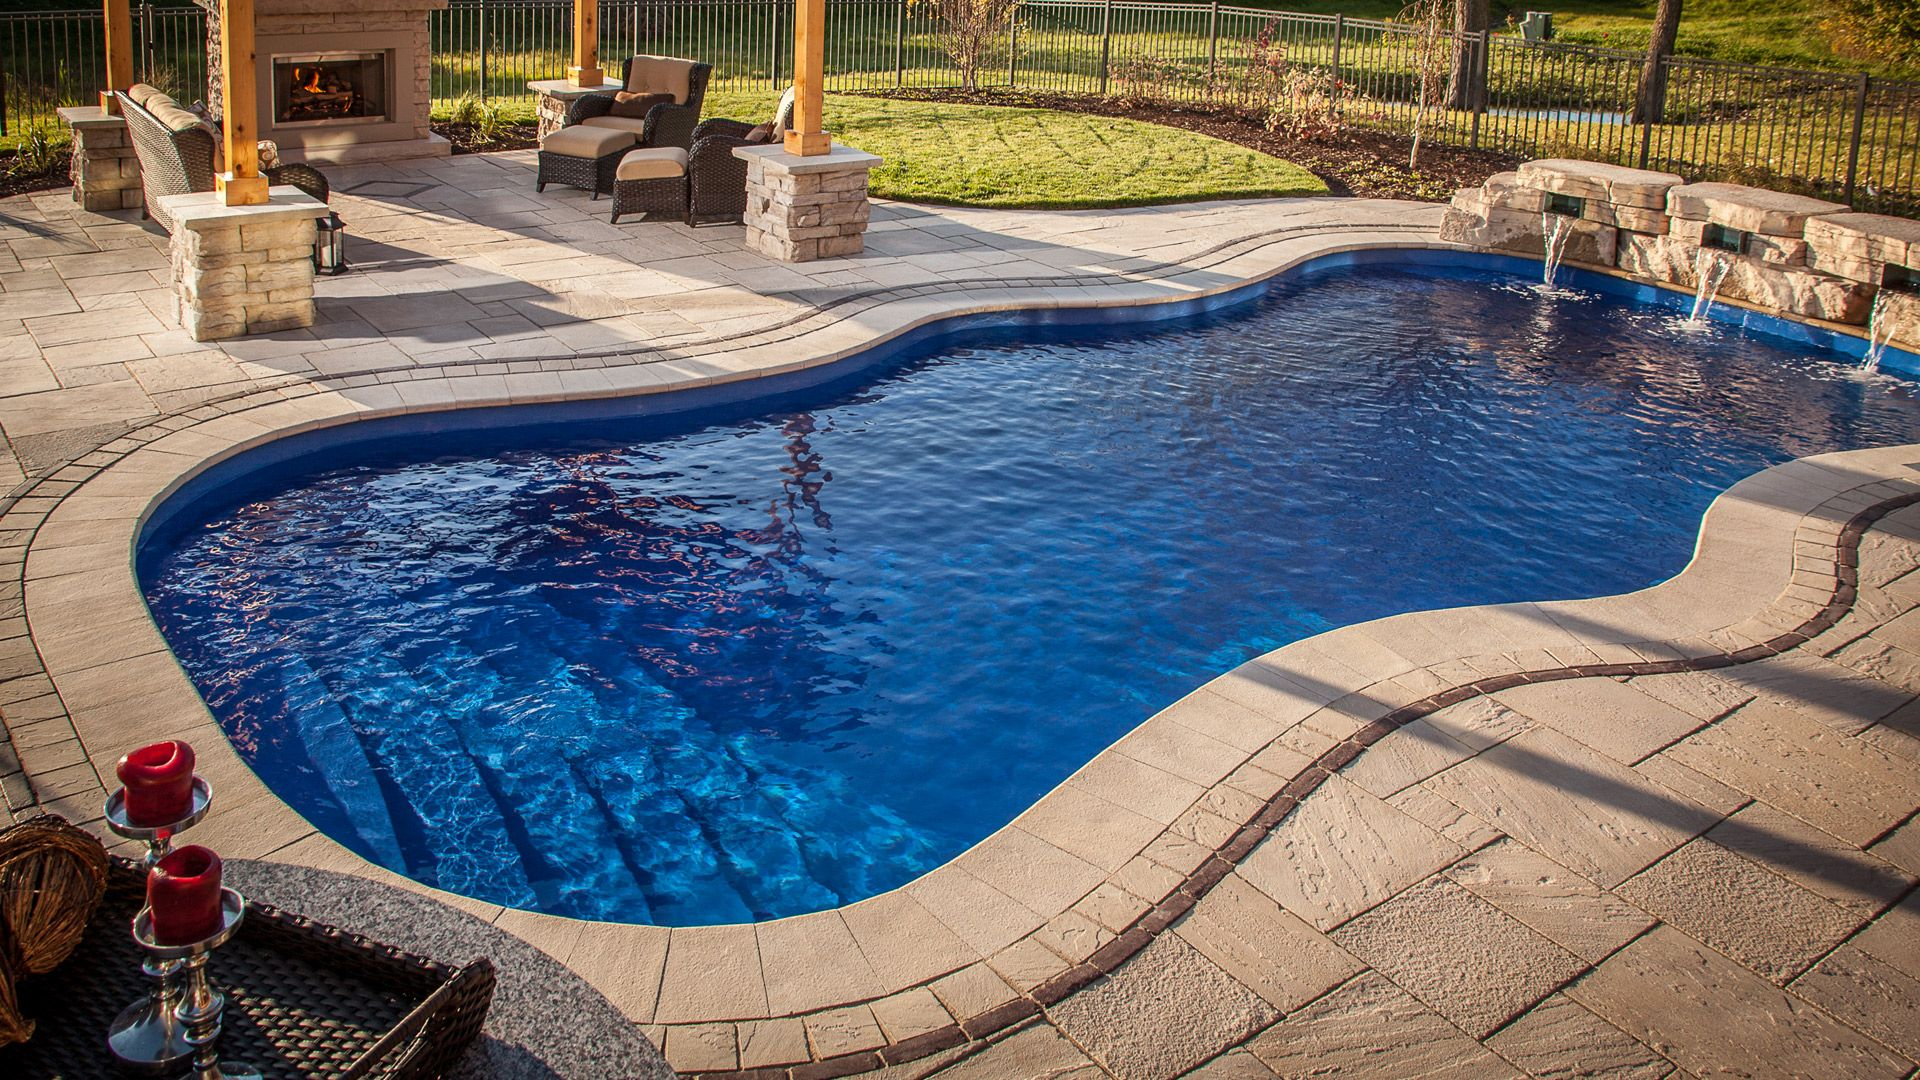 Swiming Pools Raised Inground Fiberglass Spa And Auto Cover With